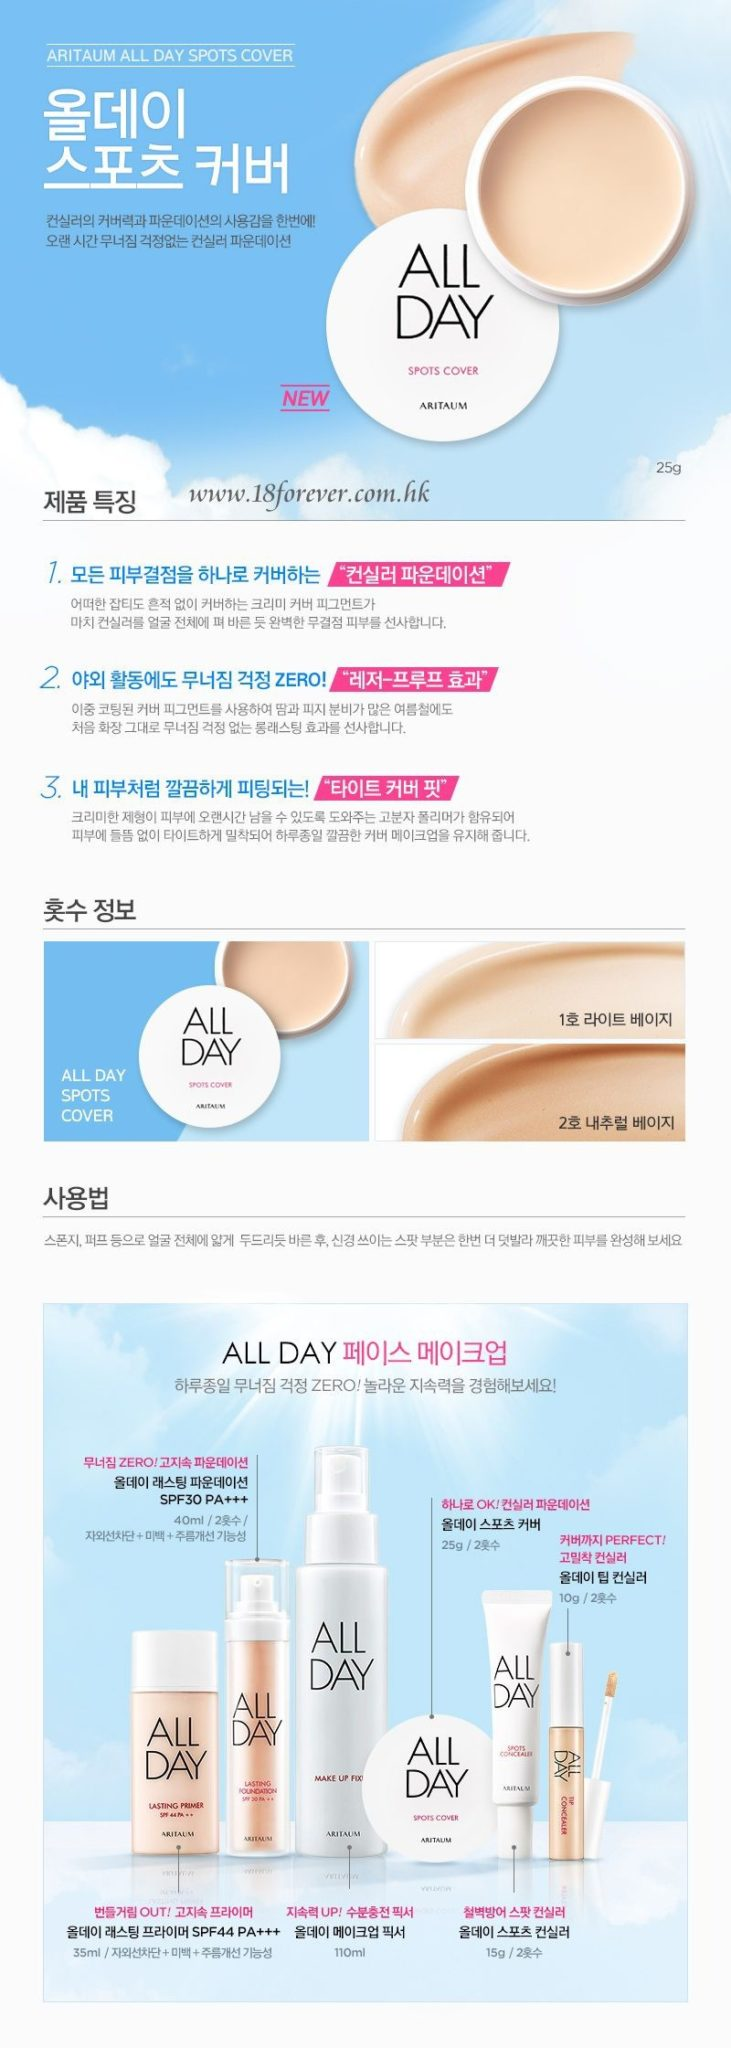 Aritaum Allday Spots Cover 25g   korean cosmetic makeup product online shop malaysia  brunei philippines1